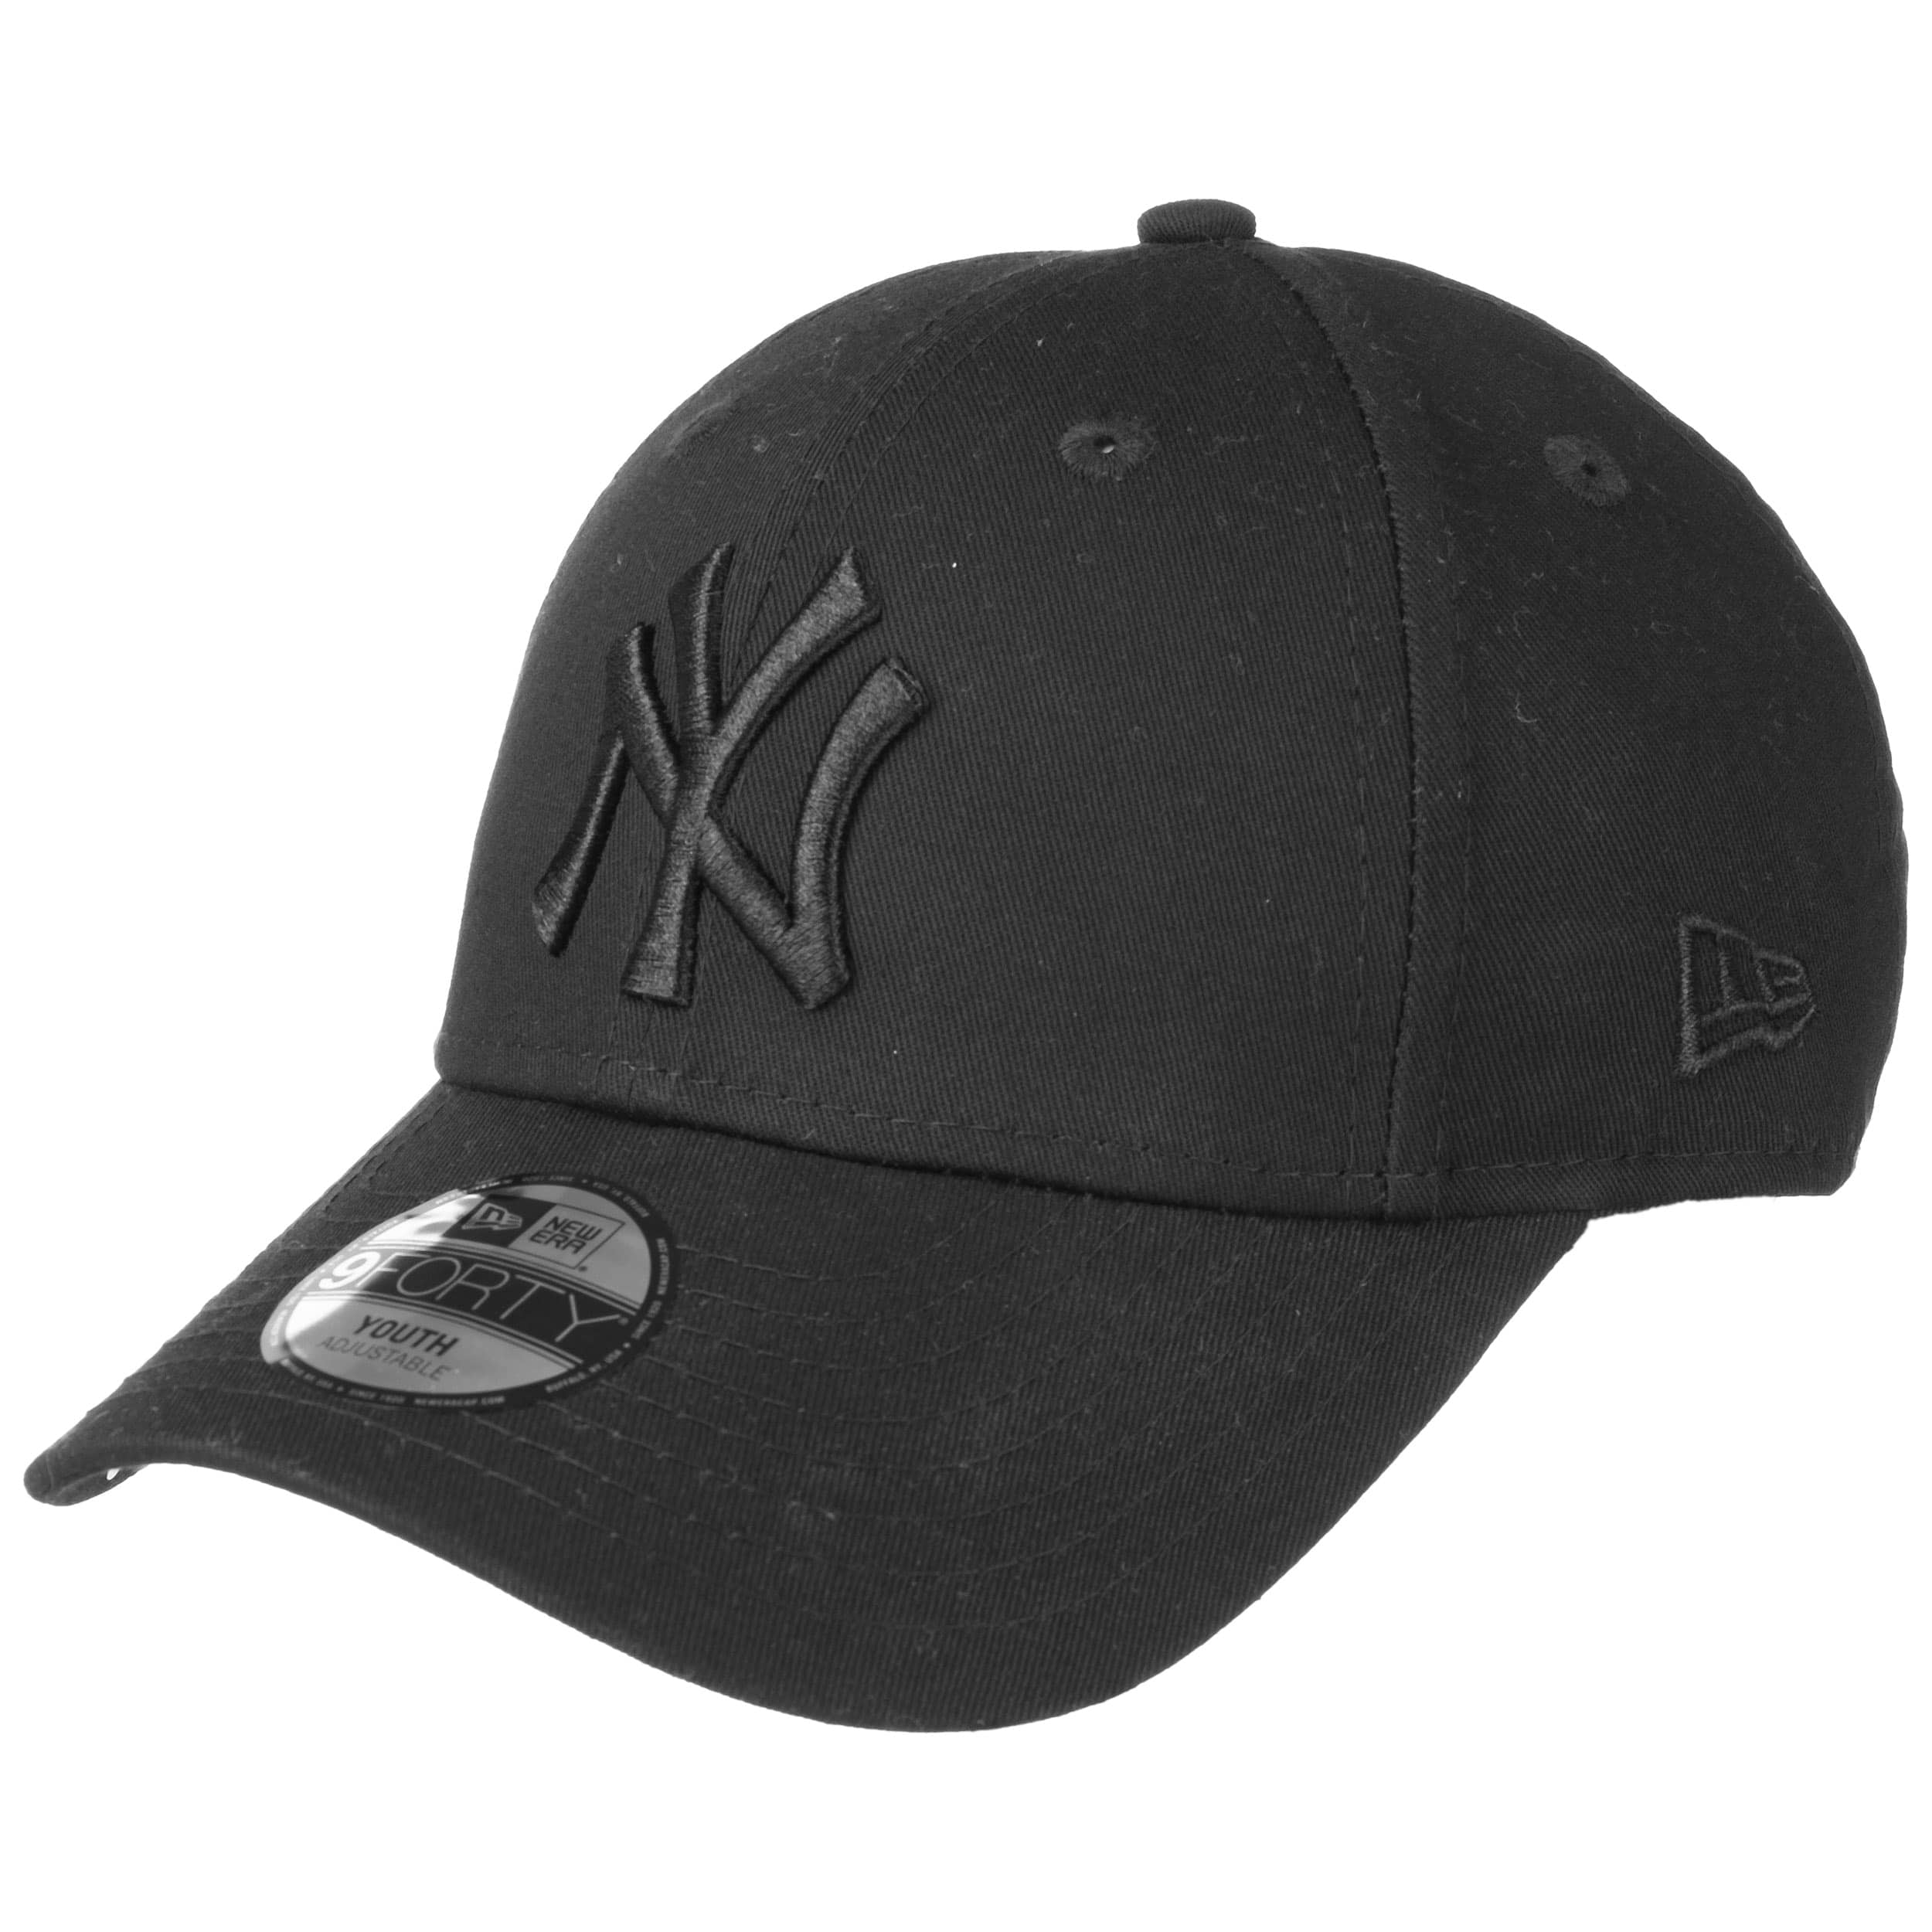 f6f8f10f077 ... 9Forty JUNIOR NY Yankees Cap by New Era - black 6 ...